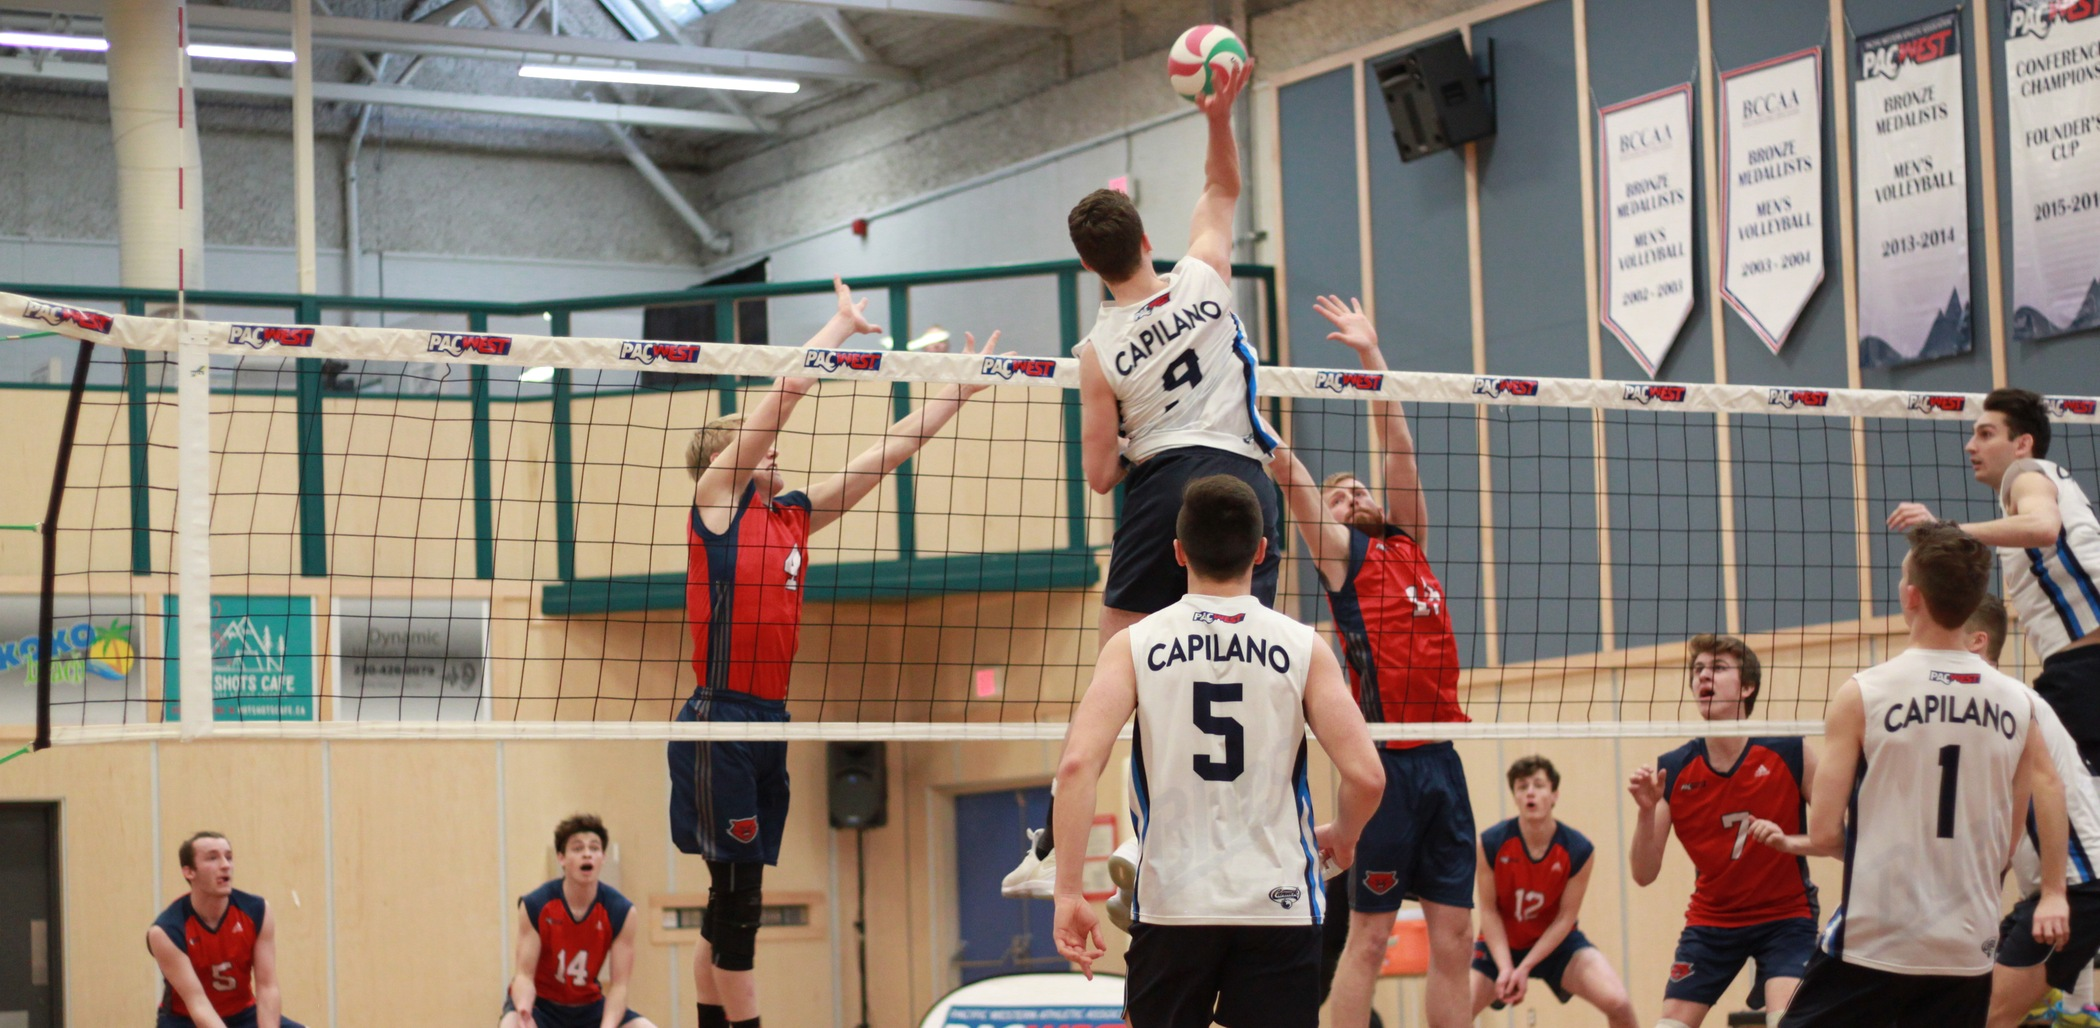 CapU downed CBC in straight-sets on Thursday to advance to the PACWEST semis. Photo courtesy College of the Rockies.